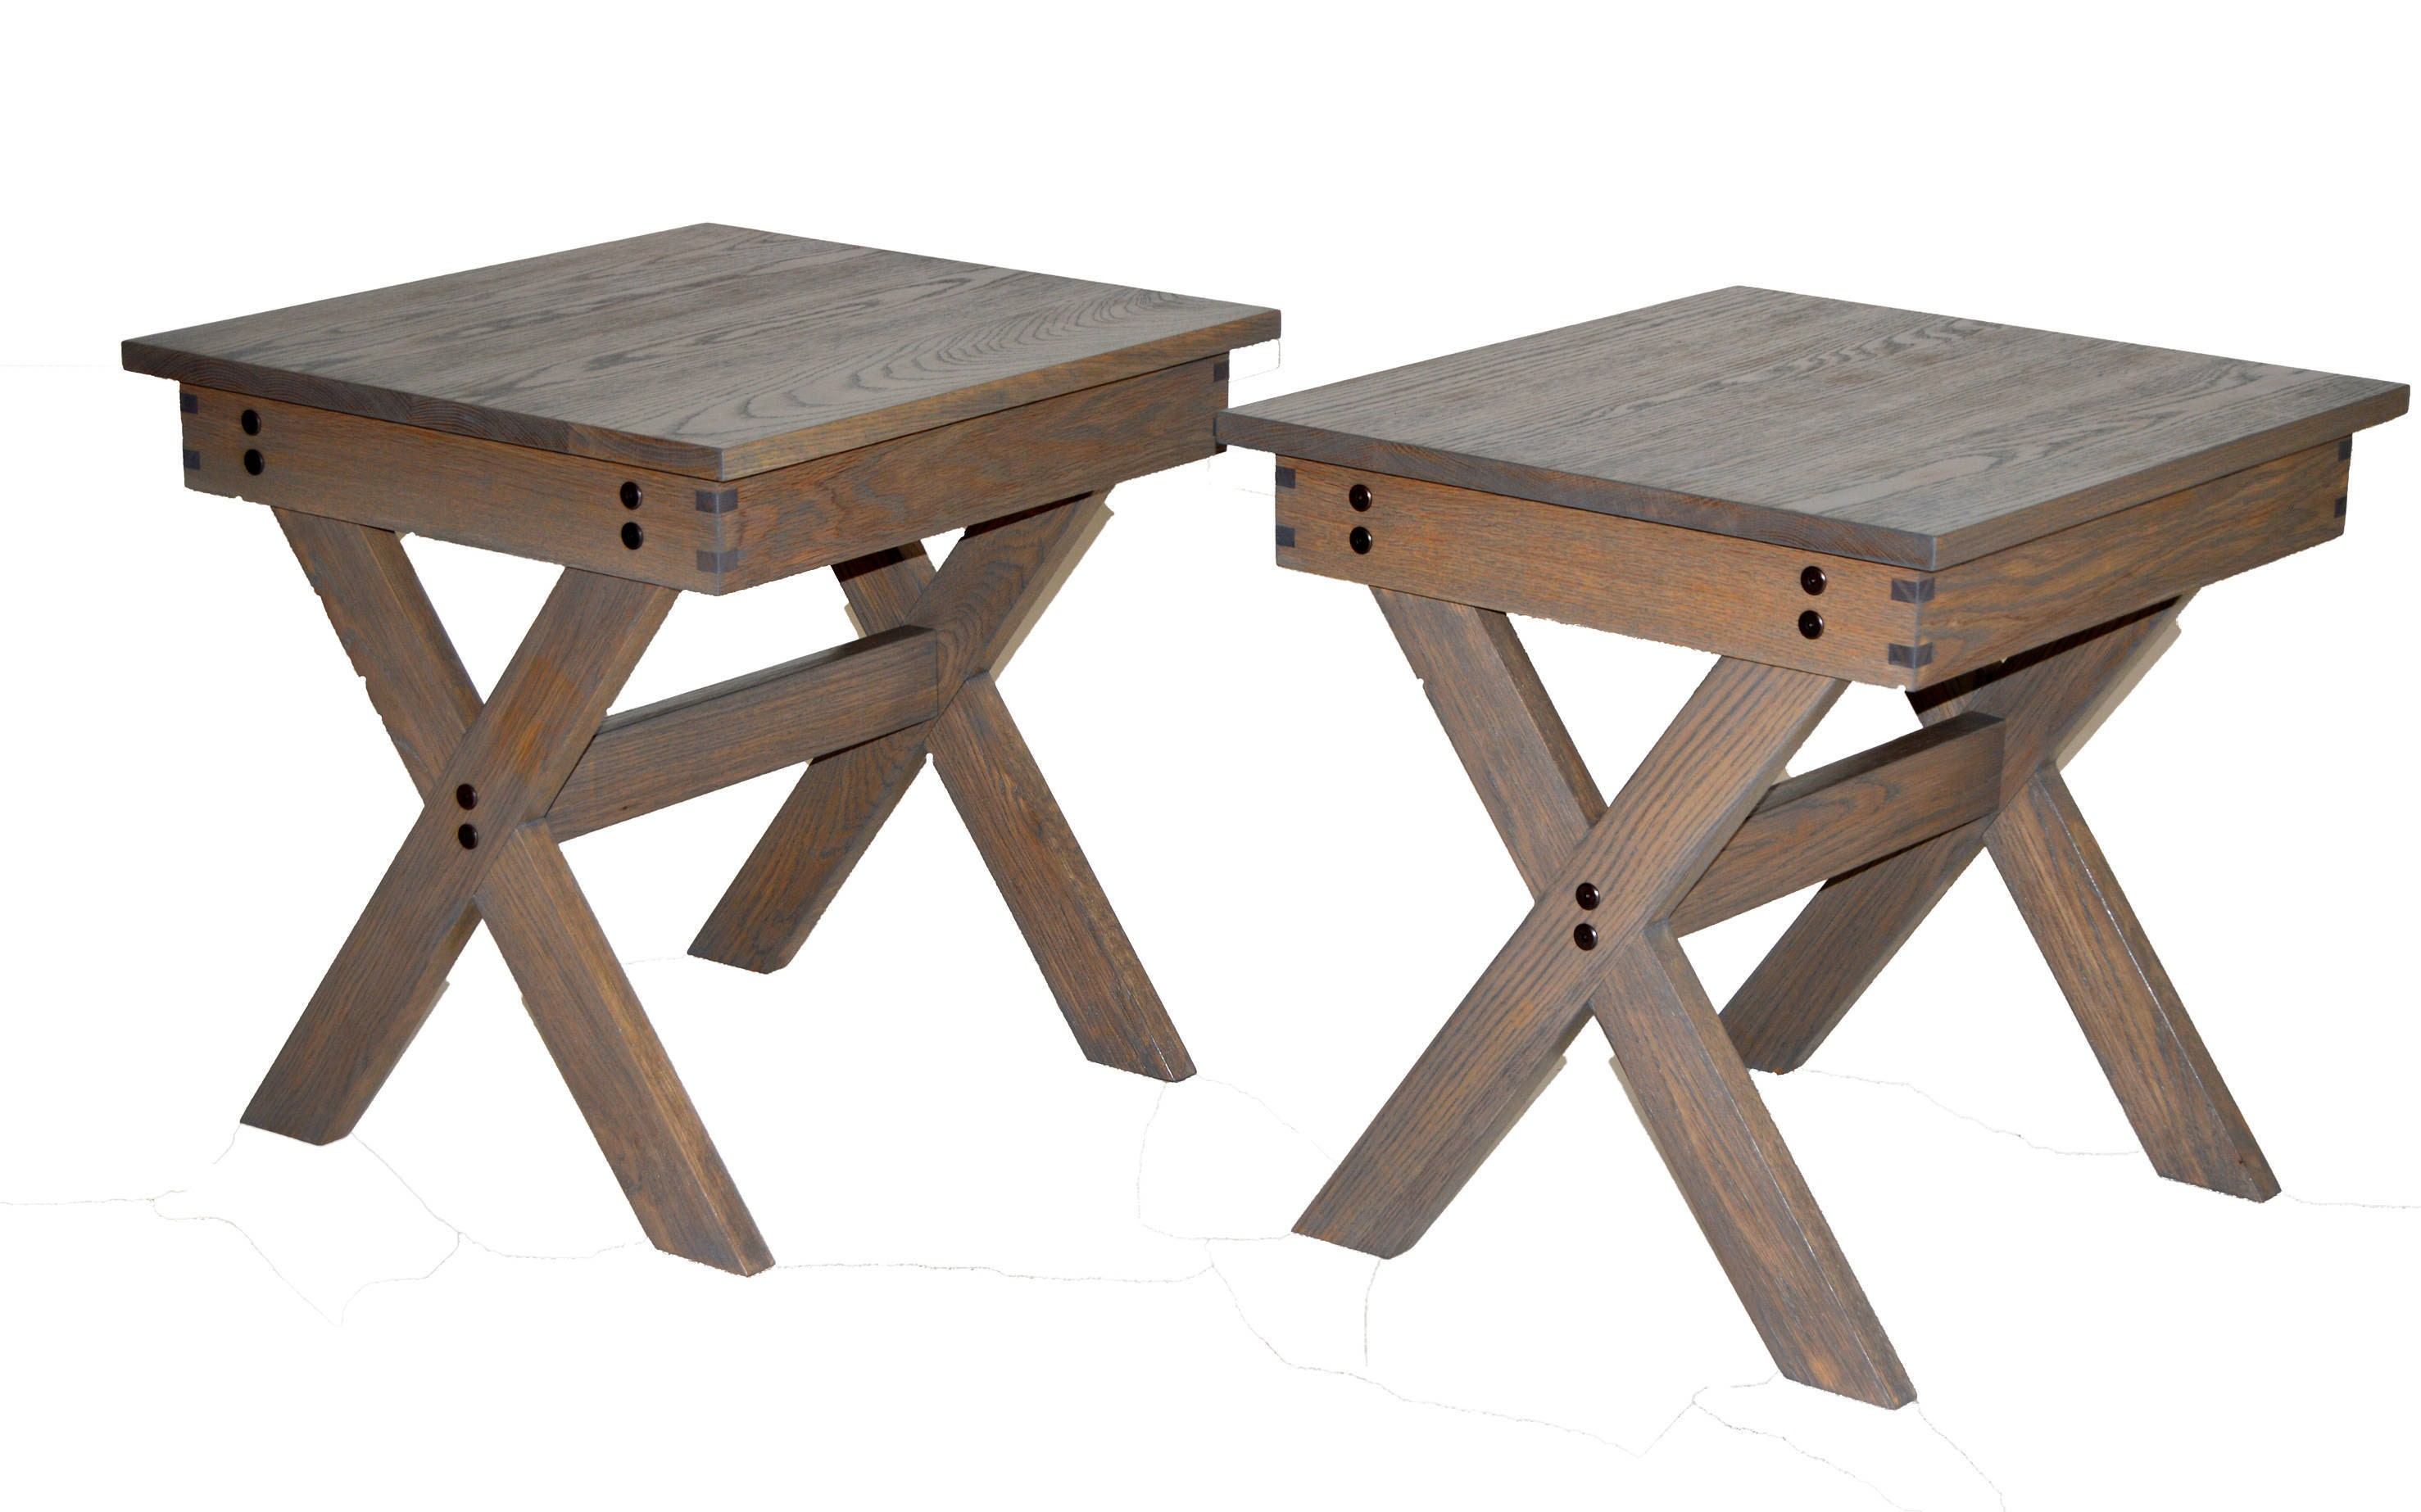 X Leg Design Coffee Table And End Table Set All 3 For One Price X Leg